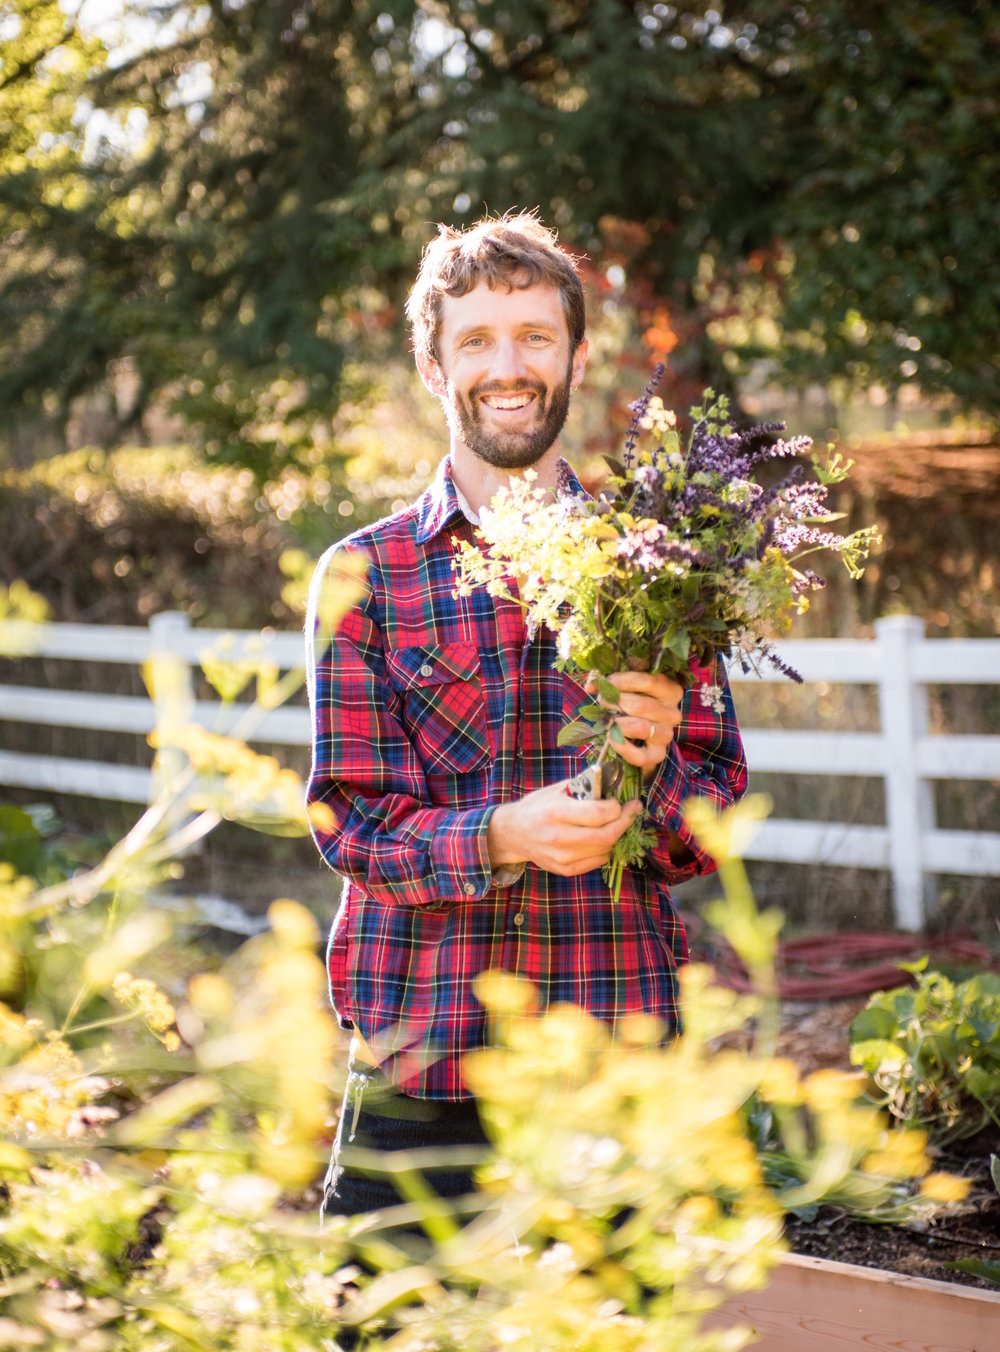 Ian Wilson,  Owner and Founder, Garden Mentor